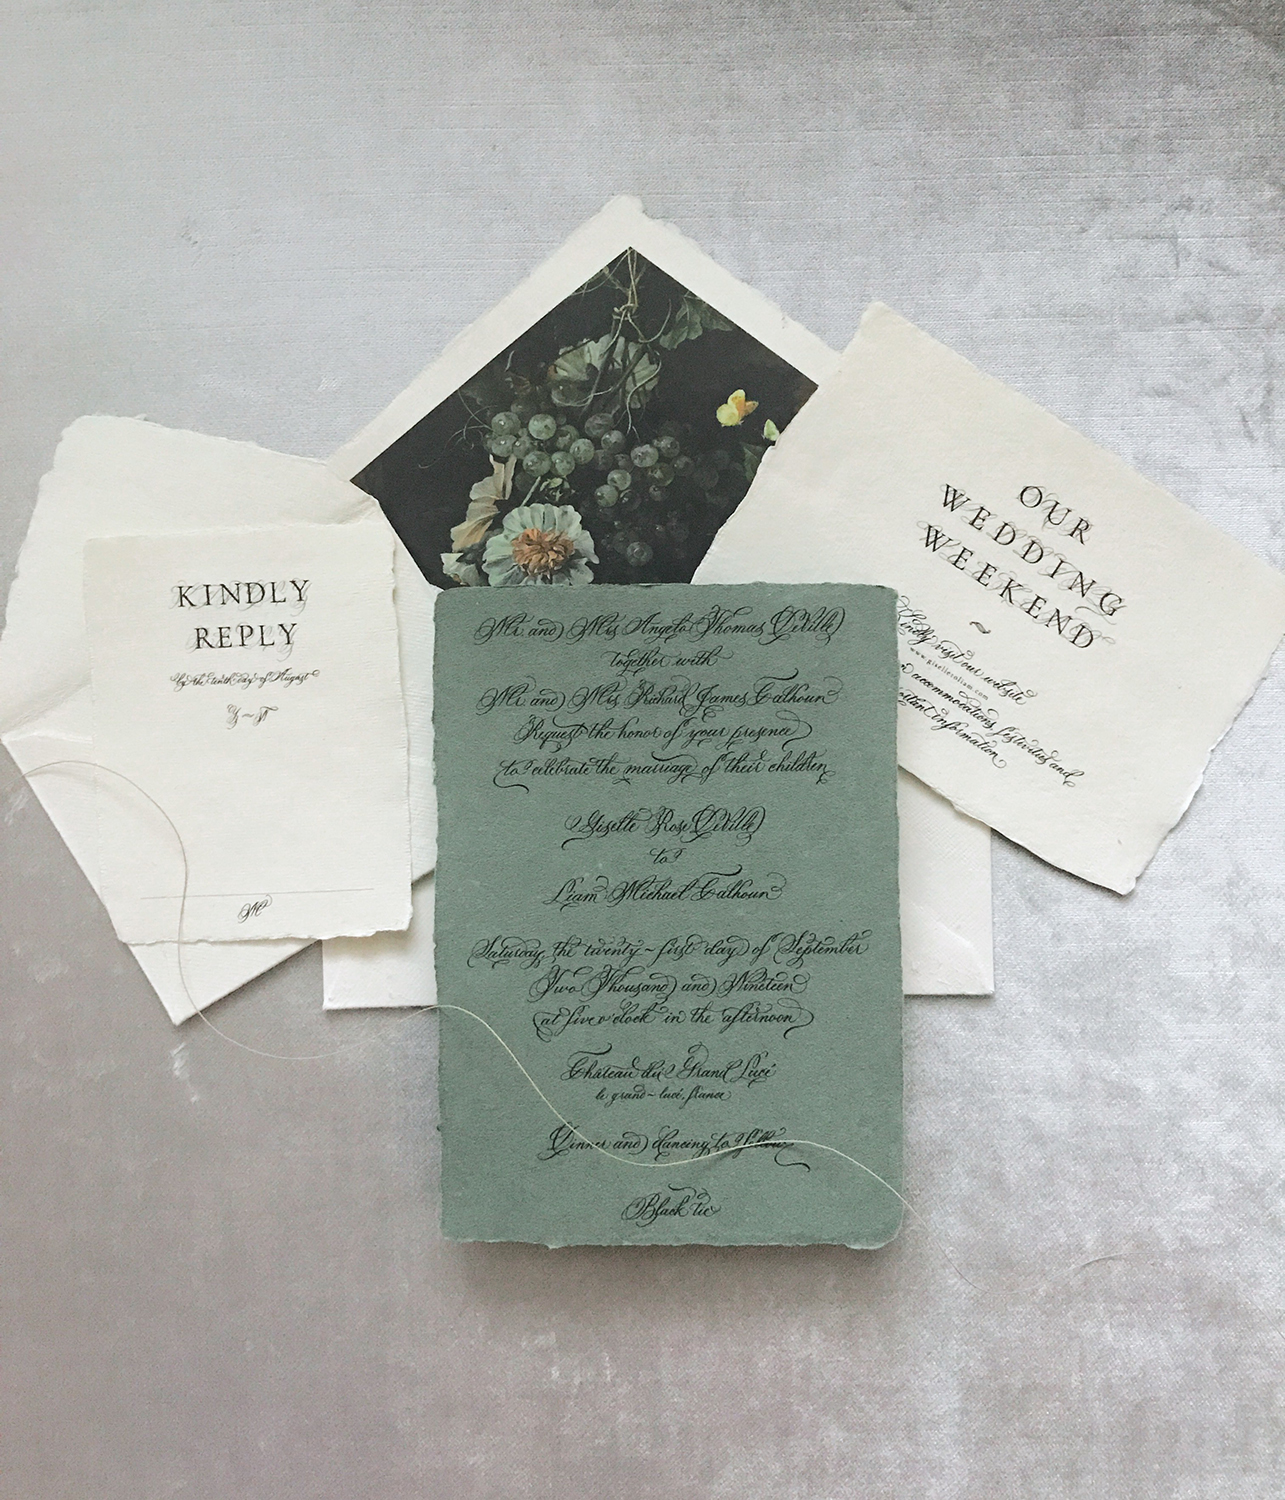 ivory-and-sage-green-wedding-invitation-full-calligraphy-suite-vintage-inspired-floral-custom-envelope-liner-for-wedding-invitations-by-leslie-and-paper-in-nj-wax-seal-custom-handwritten-wedding-calligraphy-old-world-inspiration.jpg